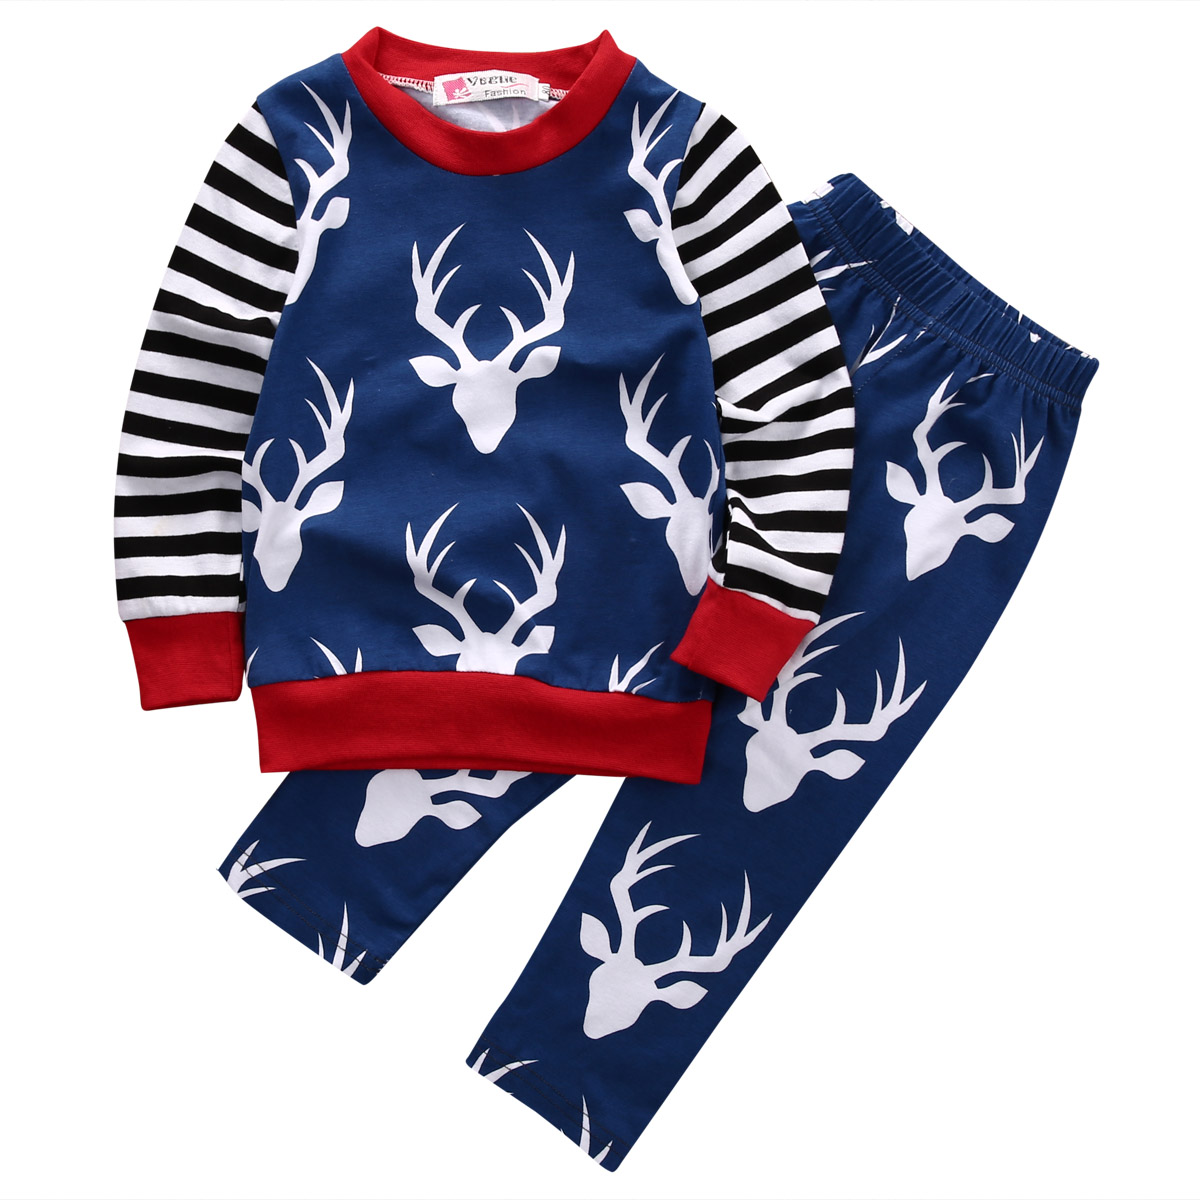 Baby Clothes Set Xmas Cotton Newborn Kids Baby Boys Clothes Deer T-Shirt Tops+Pants Christmas Outfits Set 0-24M newborn kids baby boy summer clothes set t shirt tops pants outfits boys sets 2pcs 0 3y camouflage